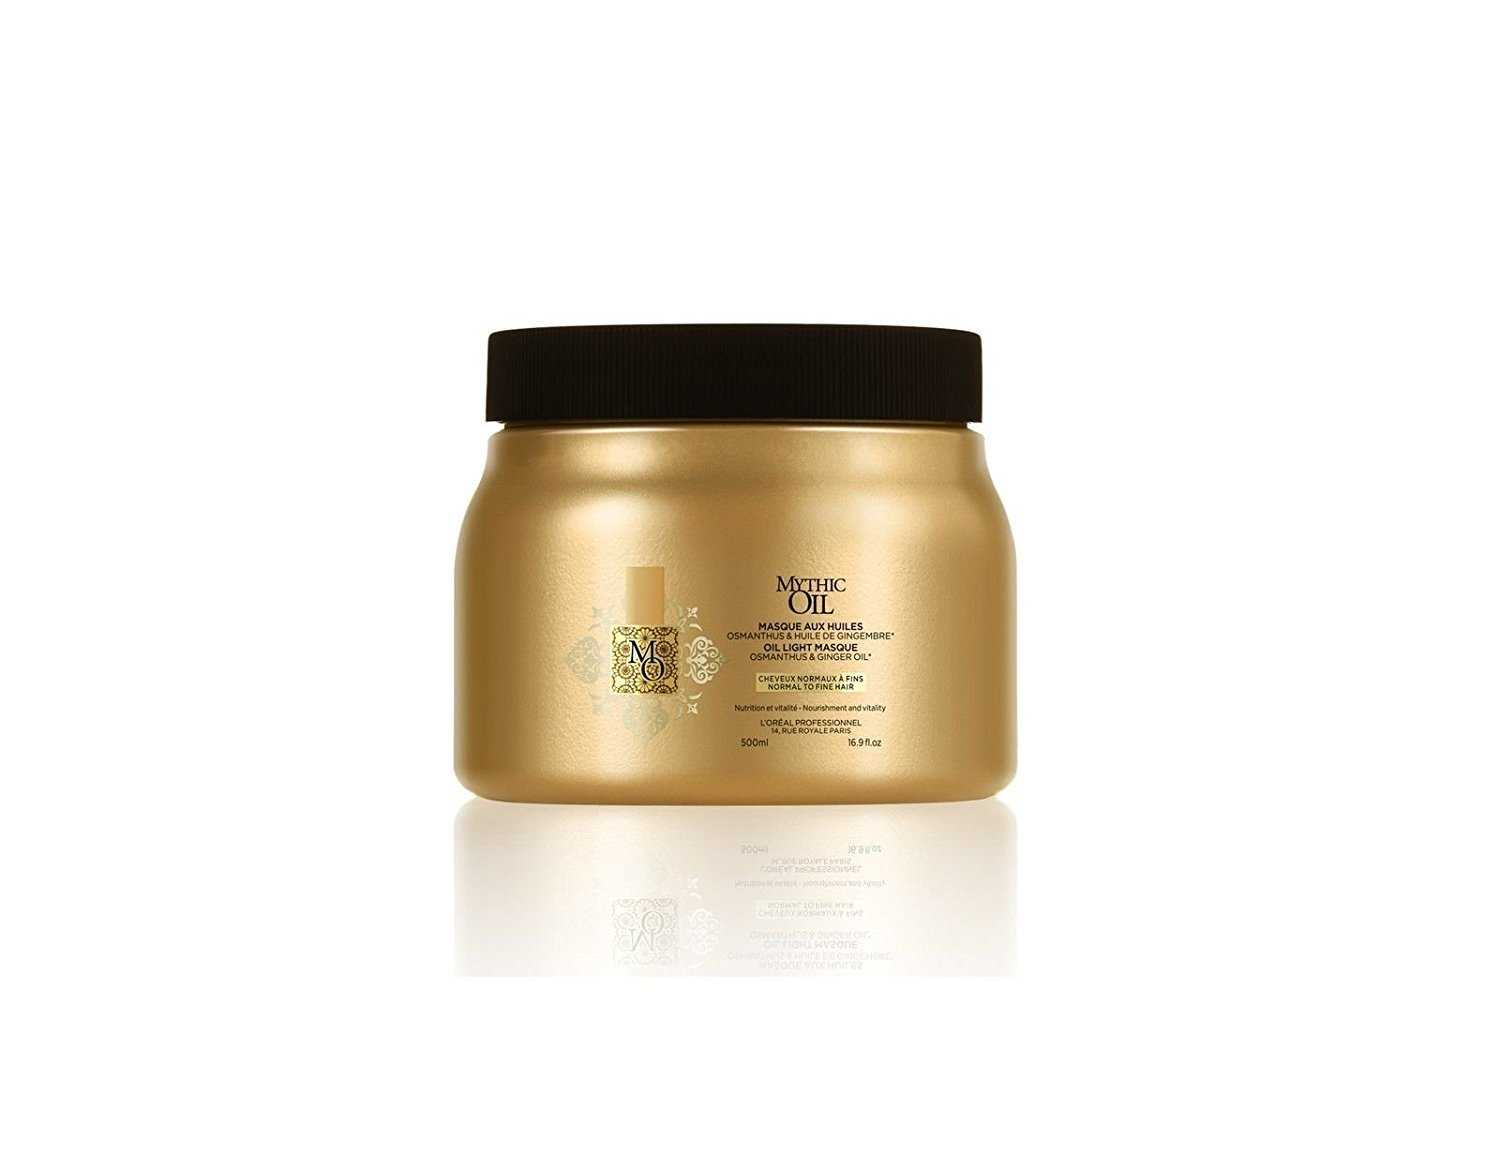 L'Oreal Mythic Oil Masque 500 ml 3474636391189 3474630471801-500ml